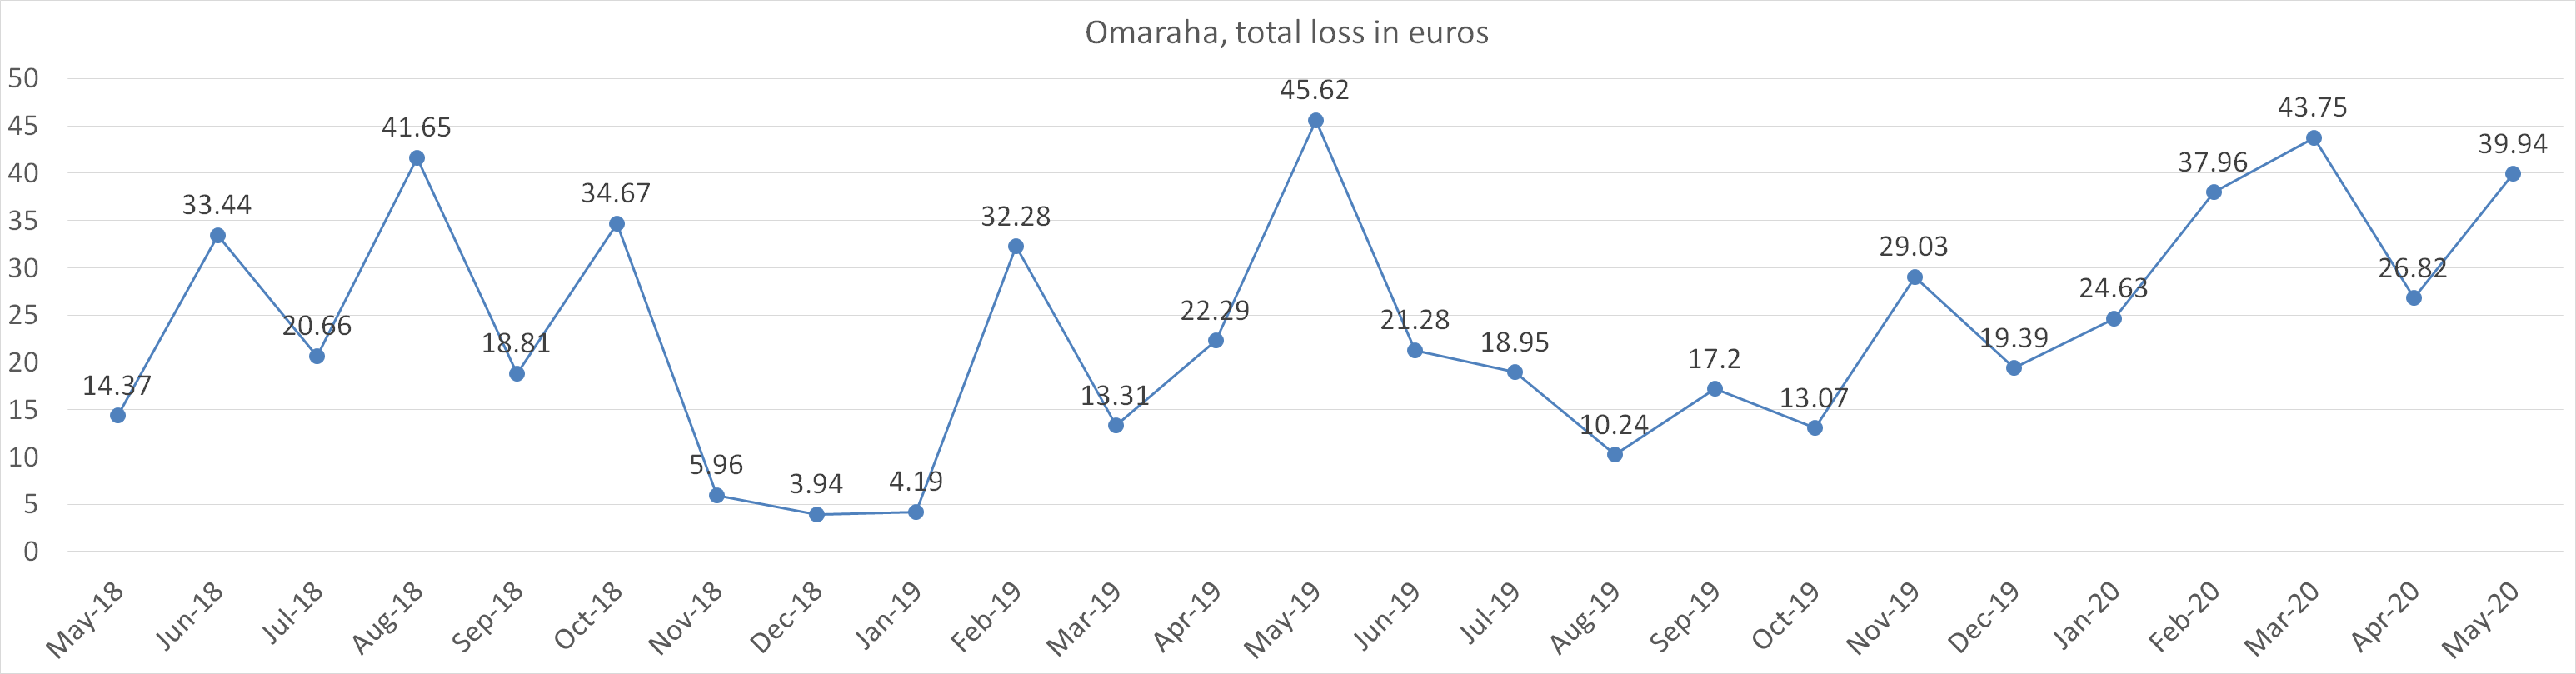 Omaraha, total loss in euros may 2020